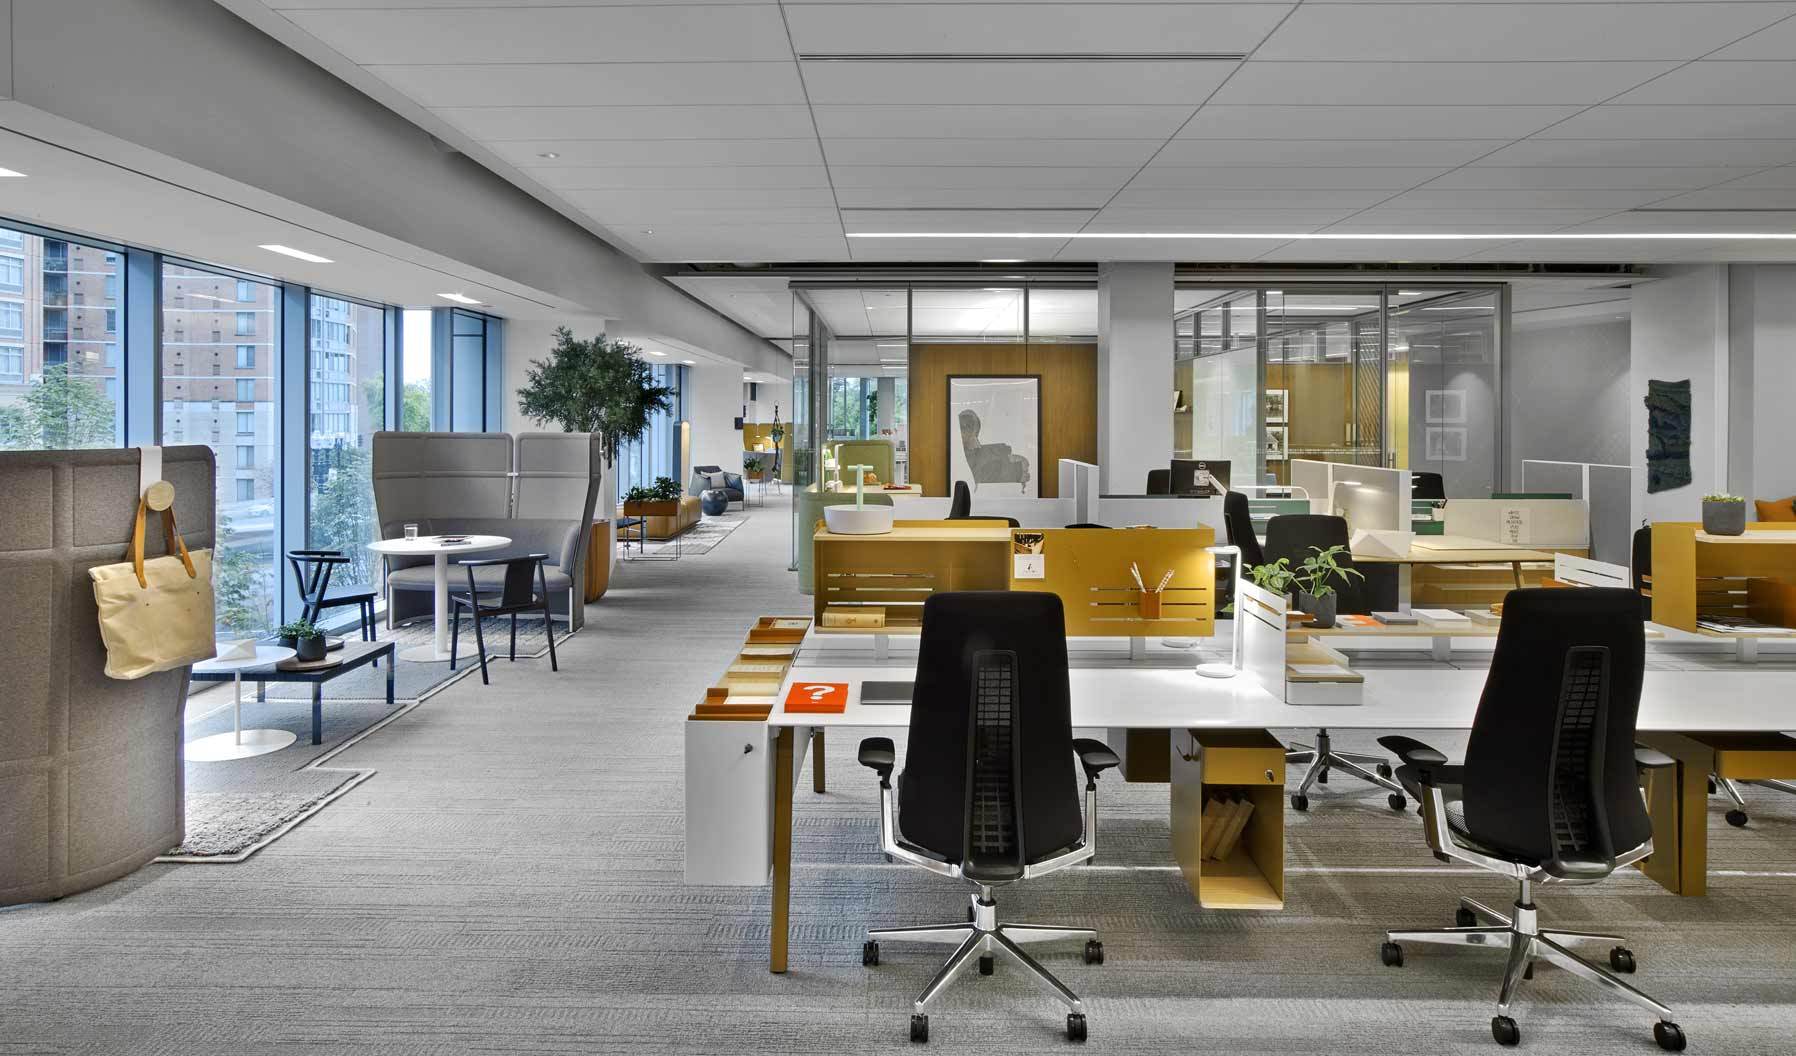 Furniture applications in this zone support those who may not have an assigned workstation, offering a variety of opportunities to